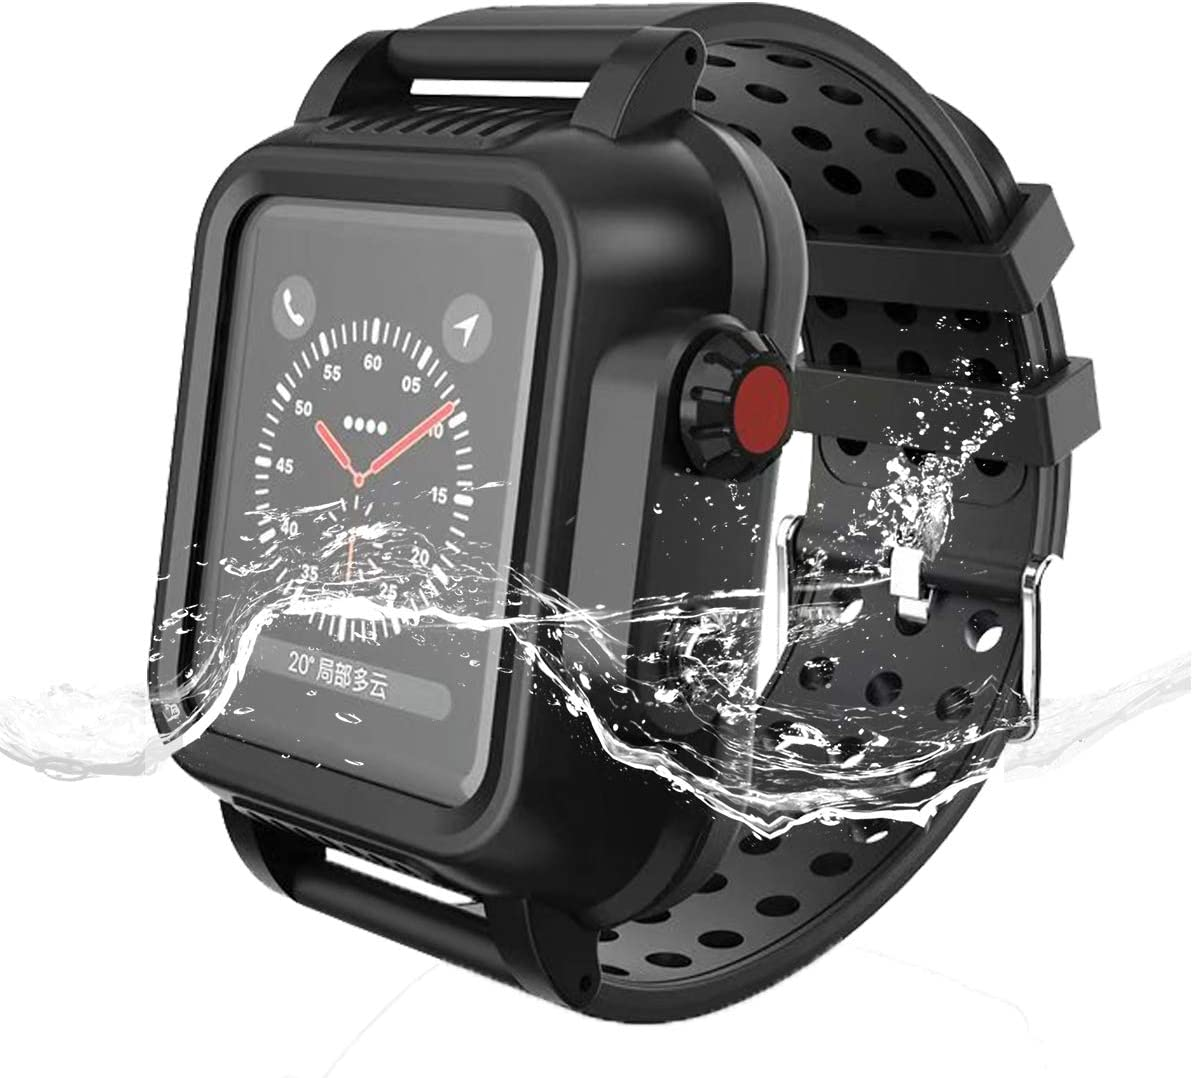 Waterproof Case for Apple Watch 42mm Series 3 2 Built-in Screen Protector Full Body Rugged iWatch 3 Protective Case with Band Anti-Scratch Drop Shock Swim Proof Apple Watch Case